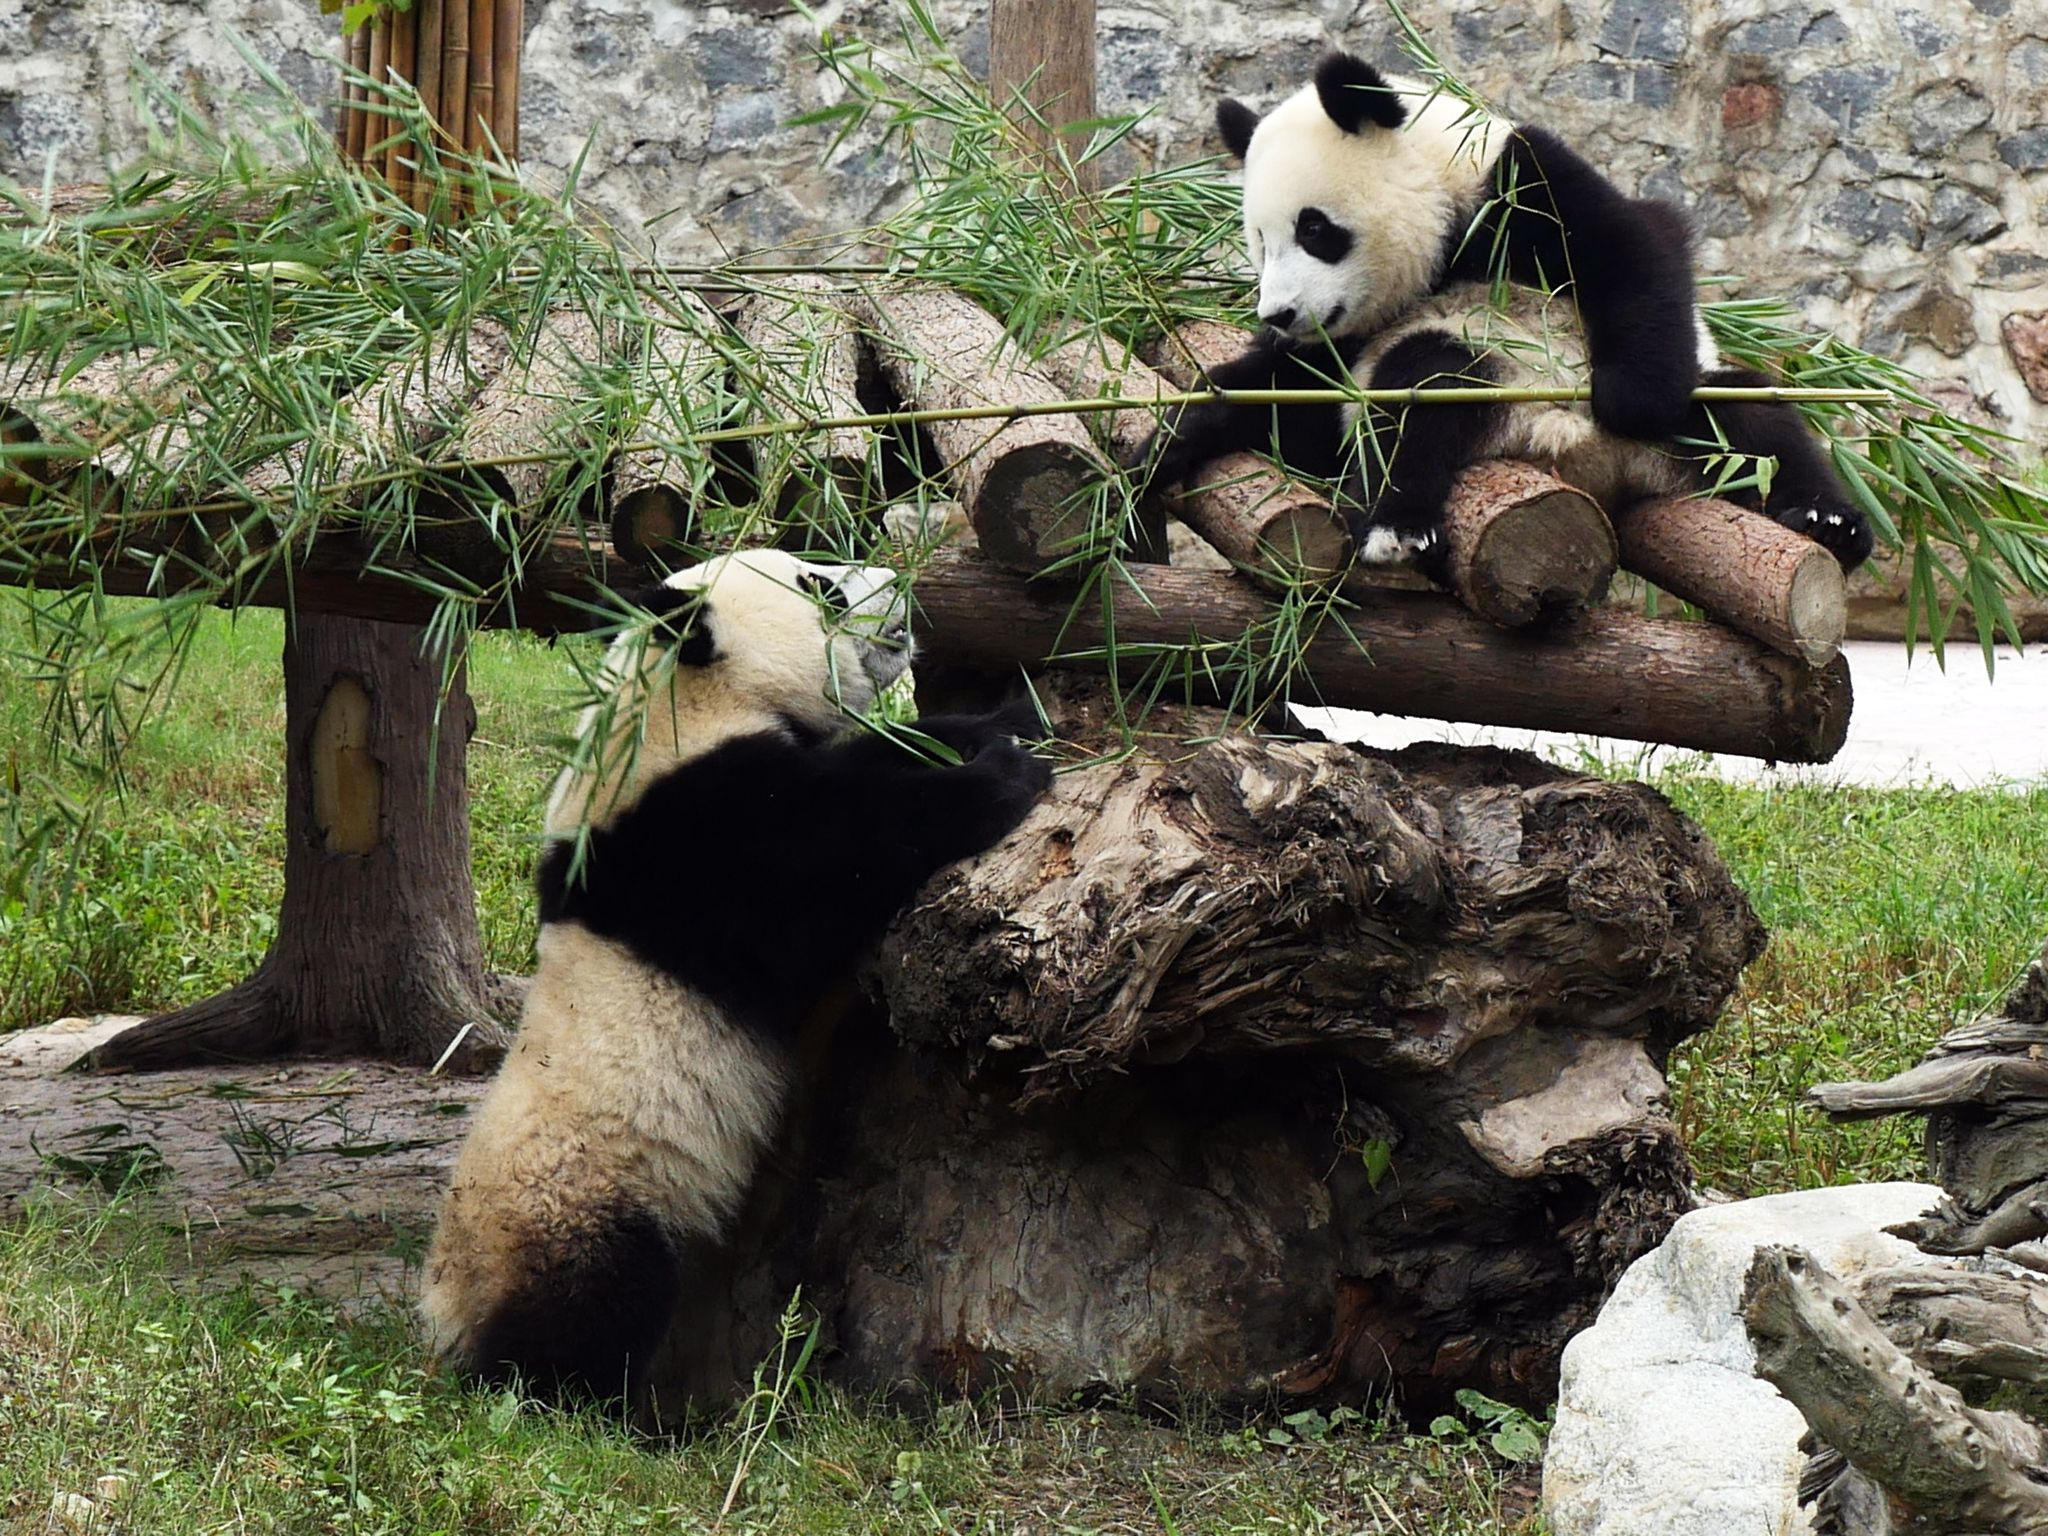 Fei Fei and Wang Lia playing with bamboo at Dujiangyan Panda Reserve. This image is from Panda... [Photo of the day - 七月 2016]